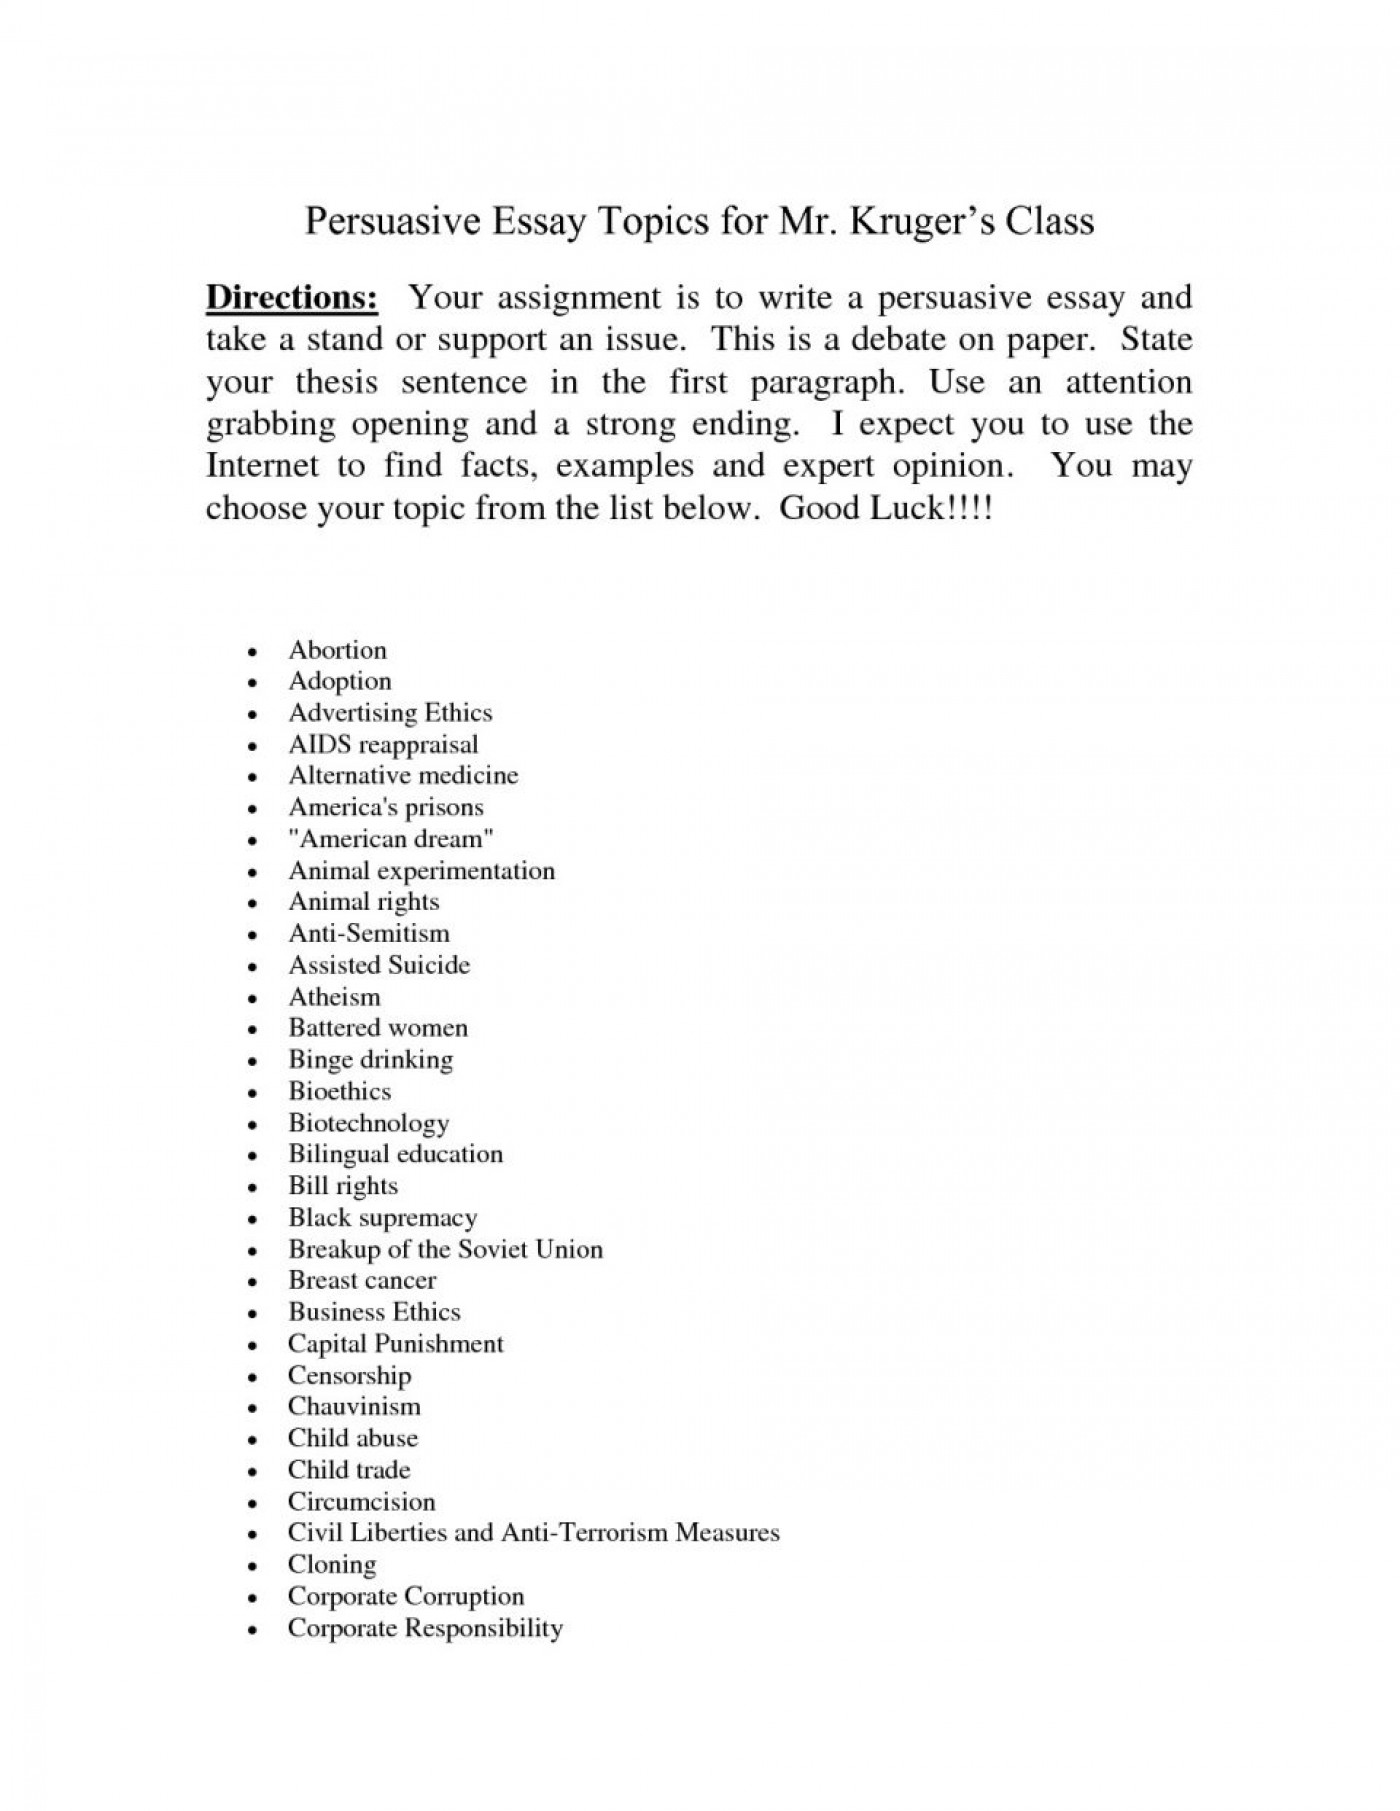 009 Topic For Essay Barca Fontanacountryinn Within Good Persuasive Narrative Topics To Write Abo Easy About Personal Descriptive Research Paper Informative Synthesis College Beautiful On A History Economics Biology 1400